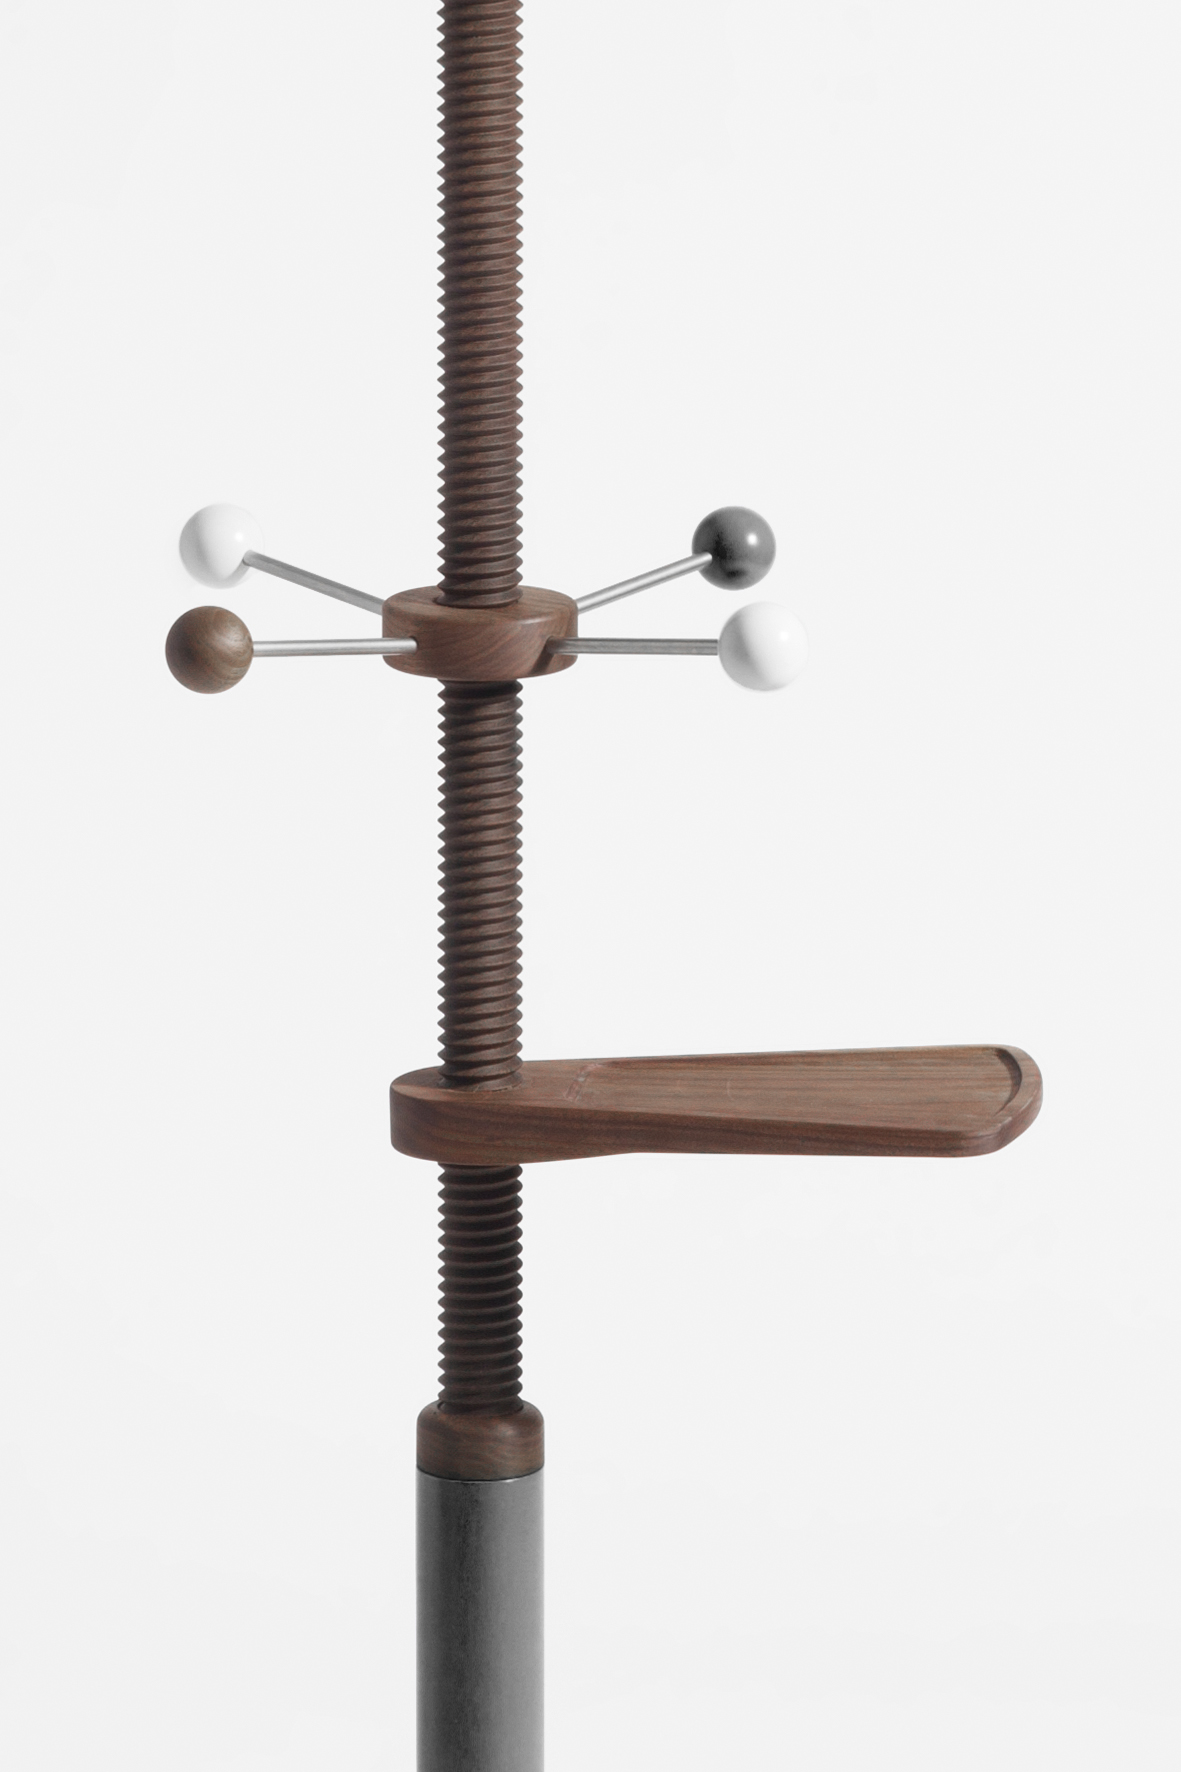 09_thread-family-coatstand_furniture-design_coordination-berlin.jpg